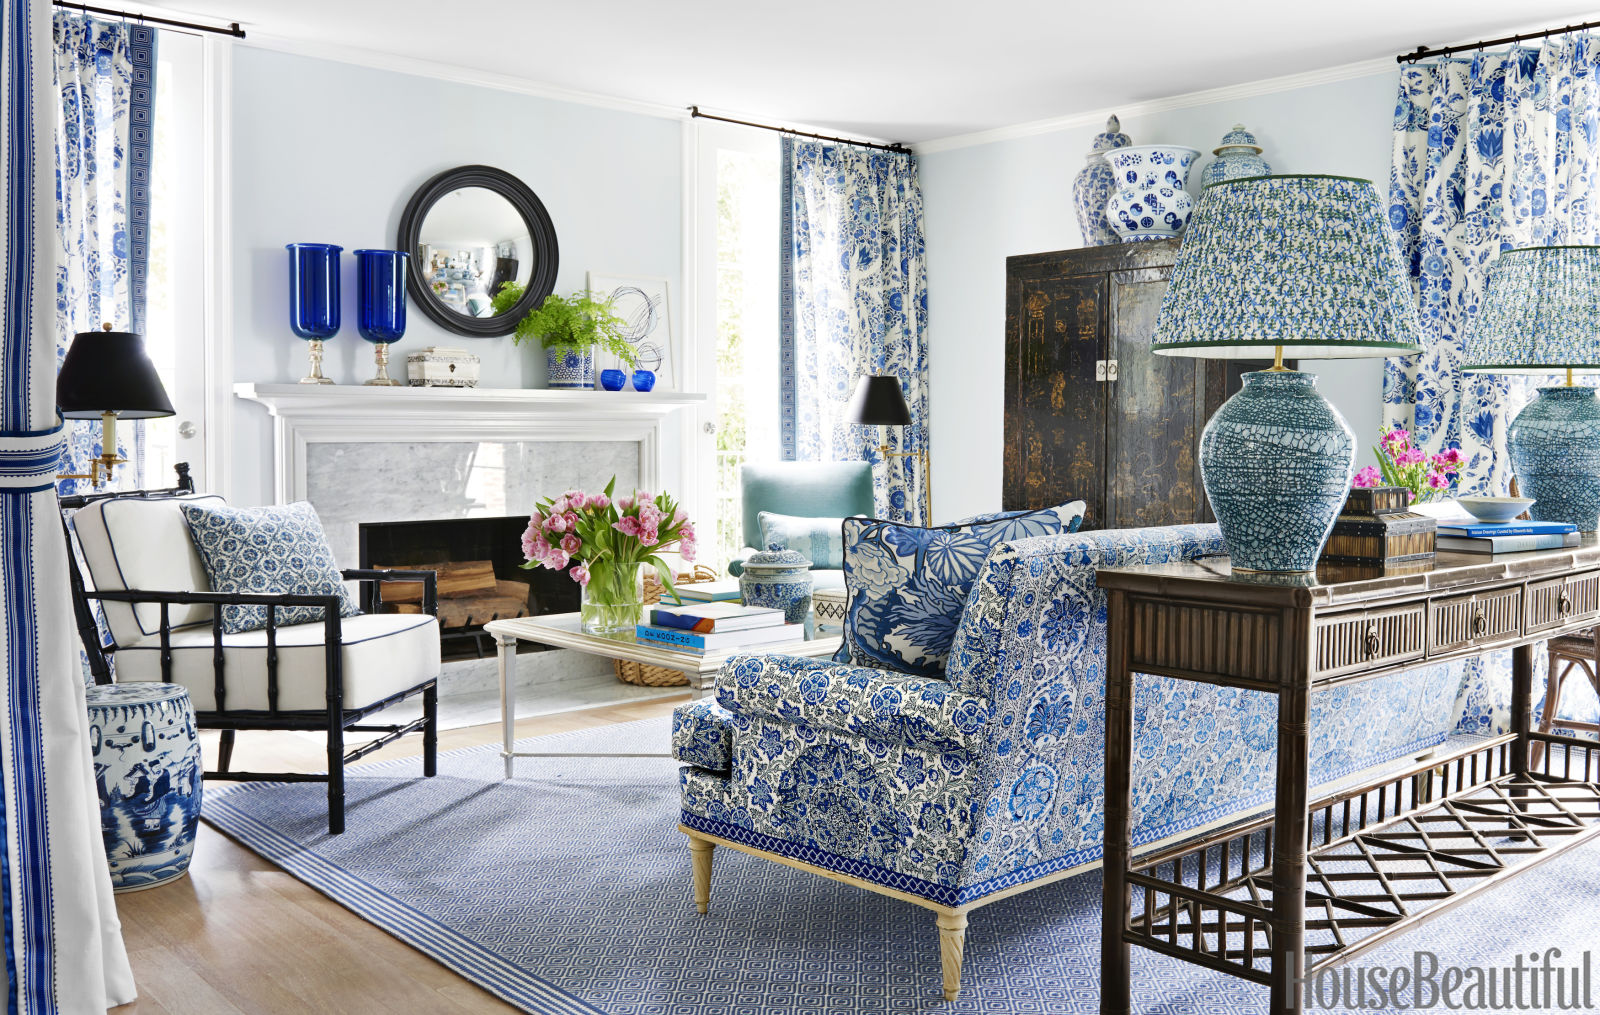 Mark d sikes interior design blue and white house tour for Mark d sikes living room